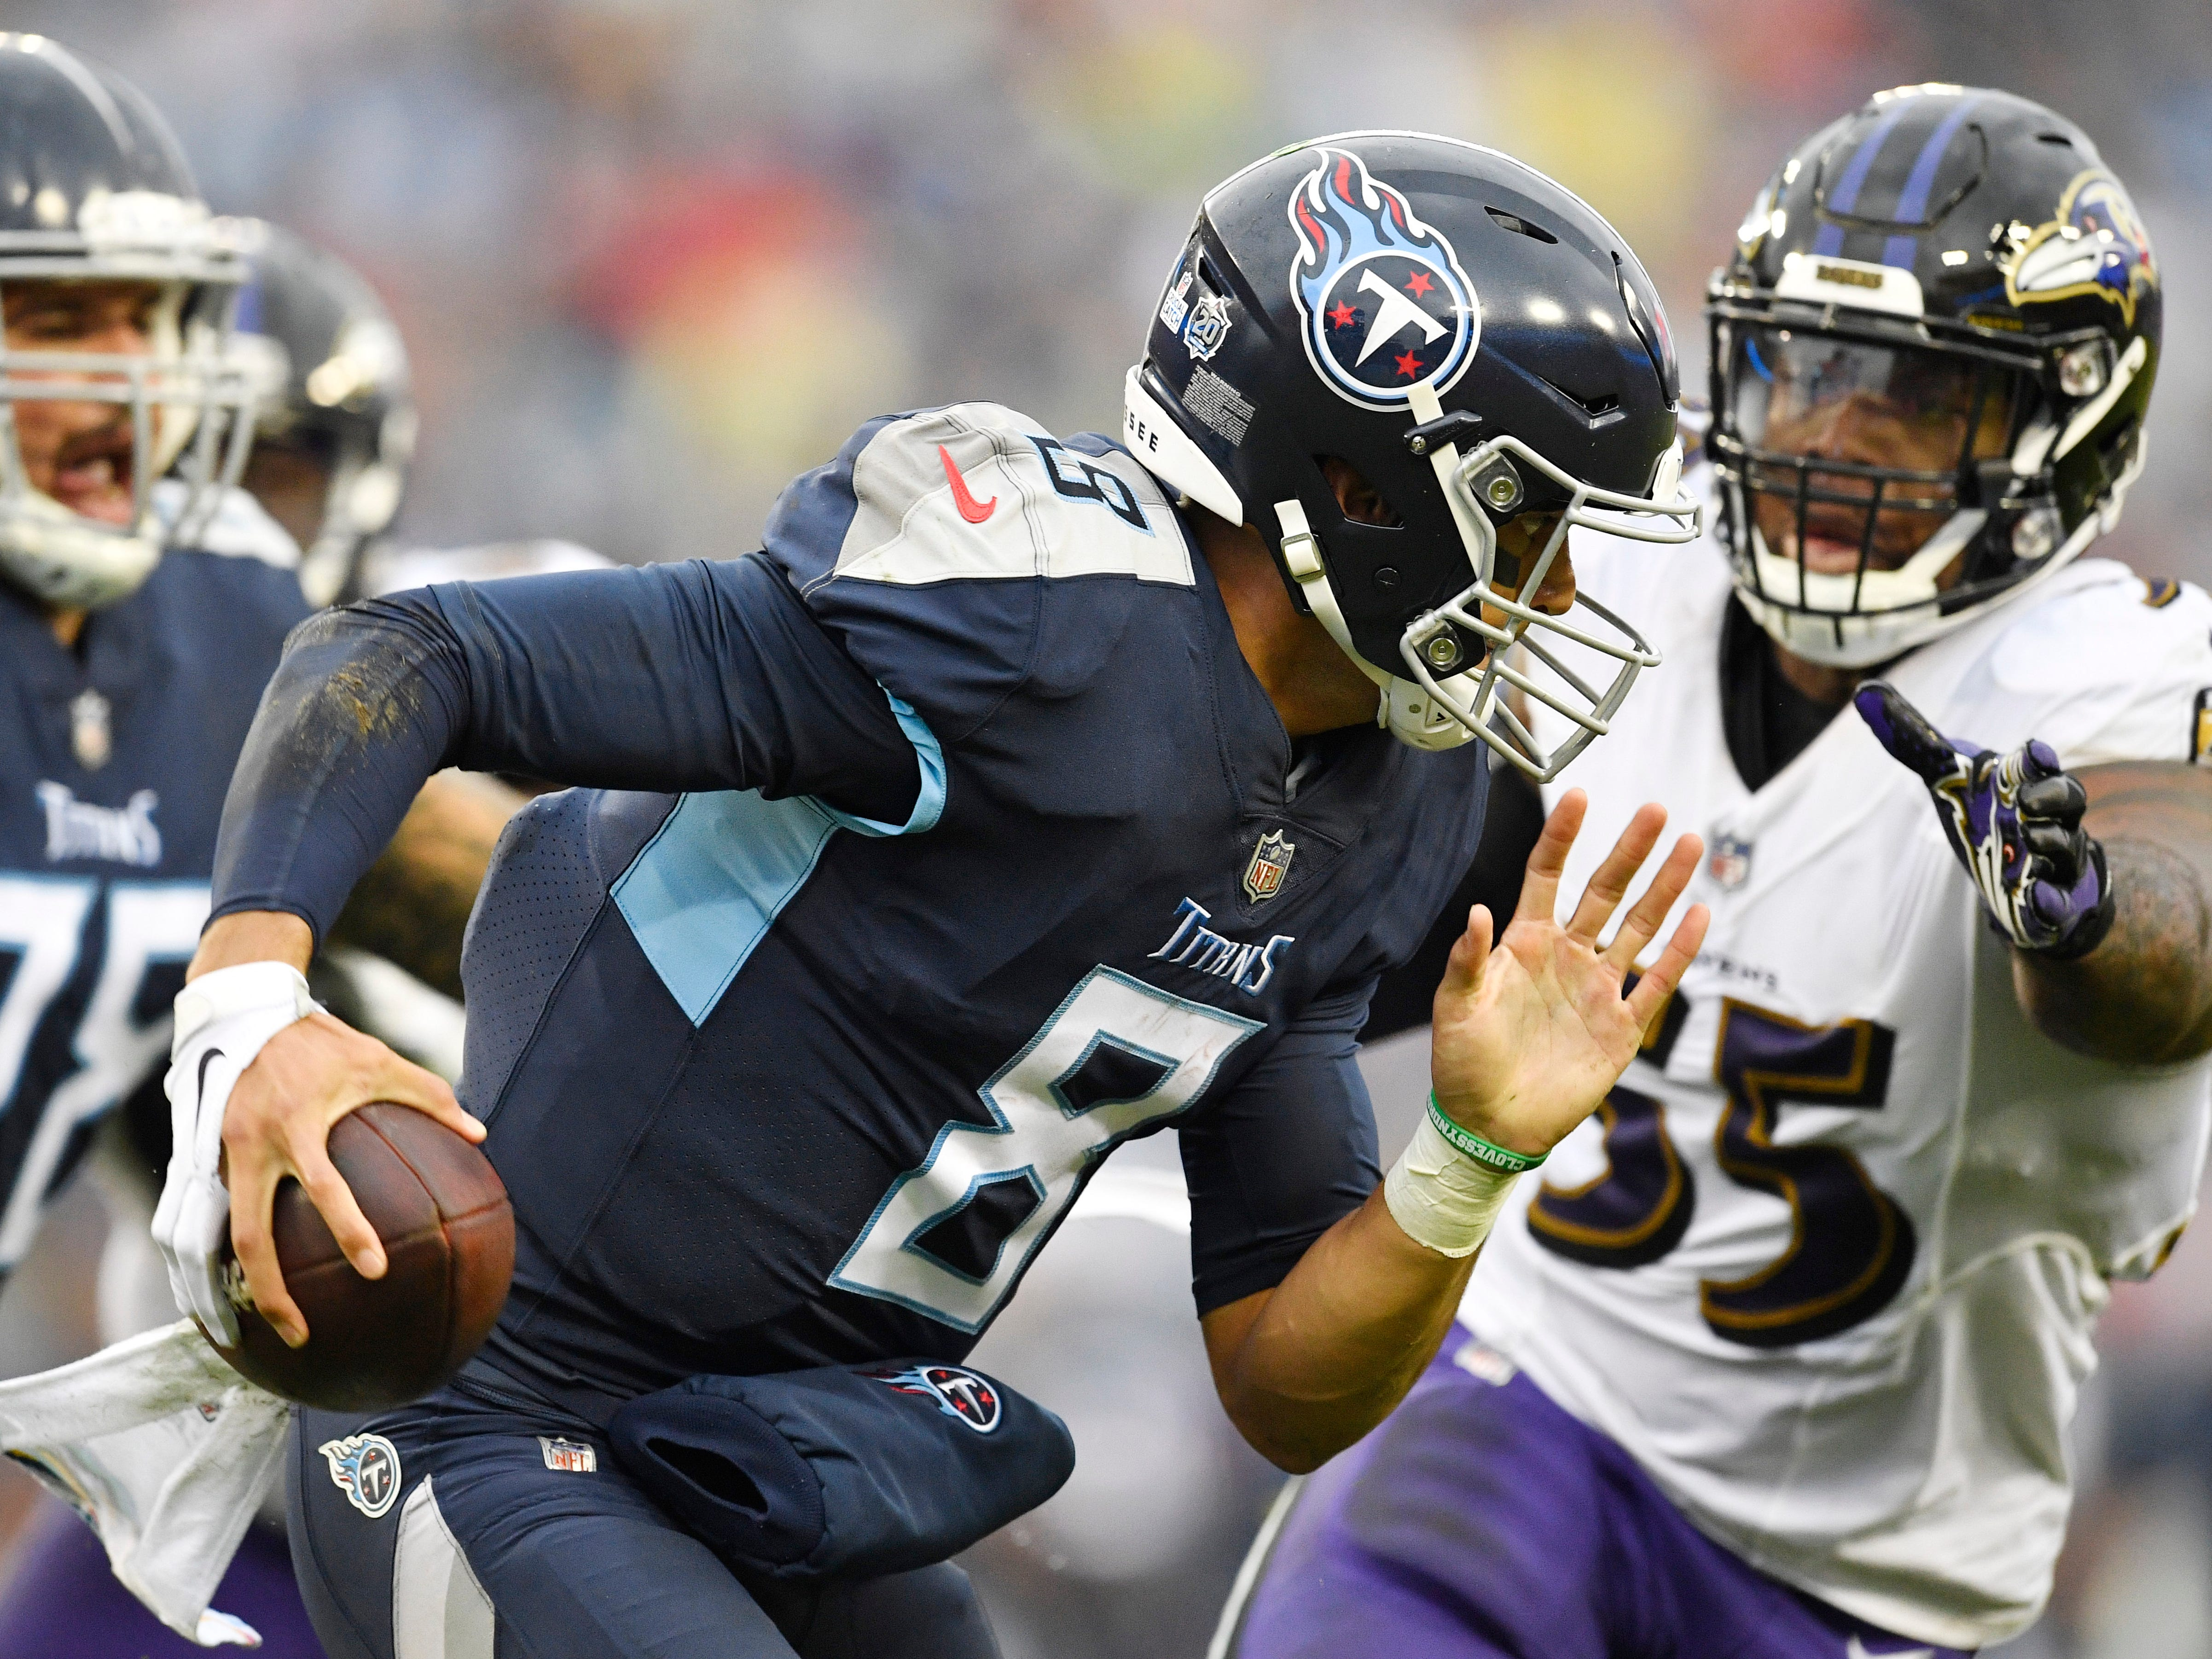 Titans quarterback Marcus Mariota (8) scrambles defended by Ravens linebacker Terrell Suggs (55) in the first half at Nissan Stadium Sunday, Oct. 14, 2018, in Nashville, Tenn.